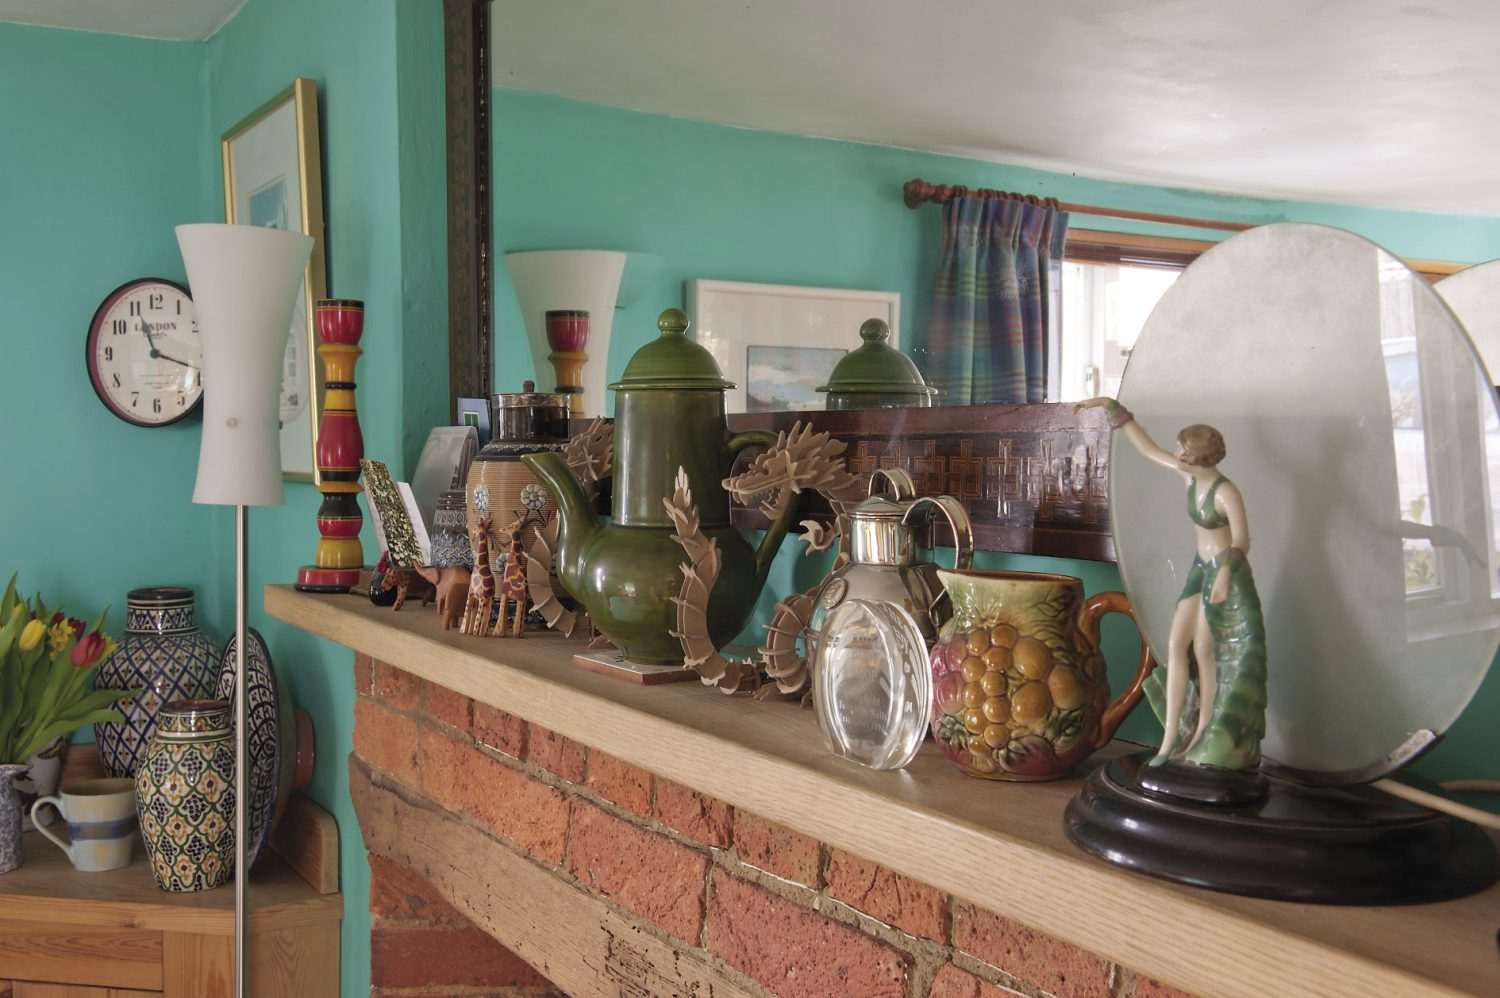 A long mirror with an inlaid wooden frame hangs above the fireplace. The mantelpiece is home to an Arts & Crafts Doulton jug, an olive green lidded pot brought back from a trip to France, a collection of painted wooden African animals and a pair of vibrant candlesticks